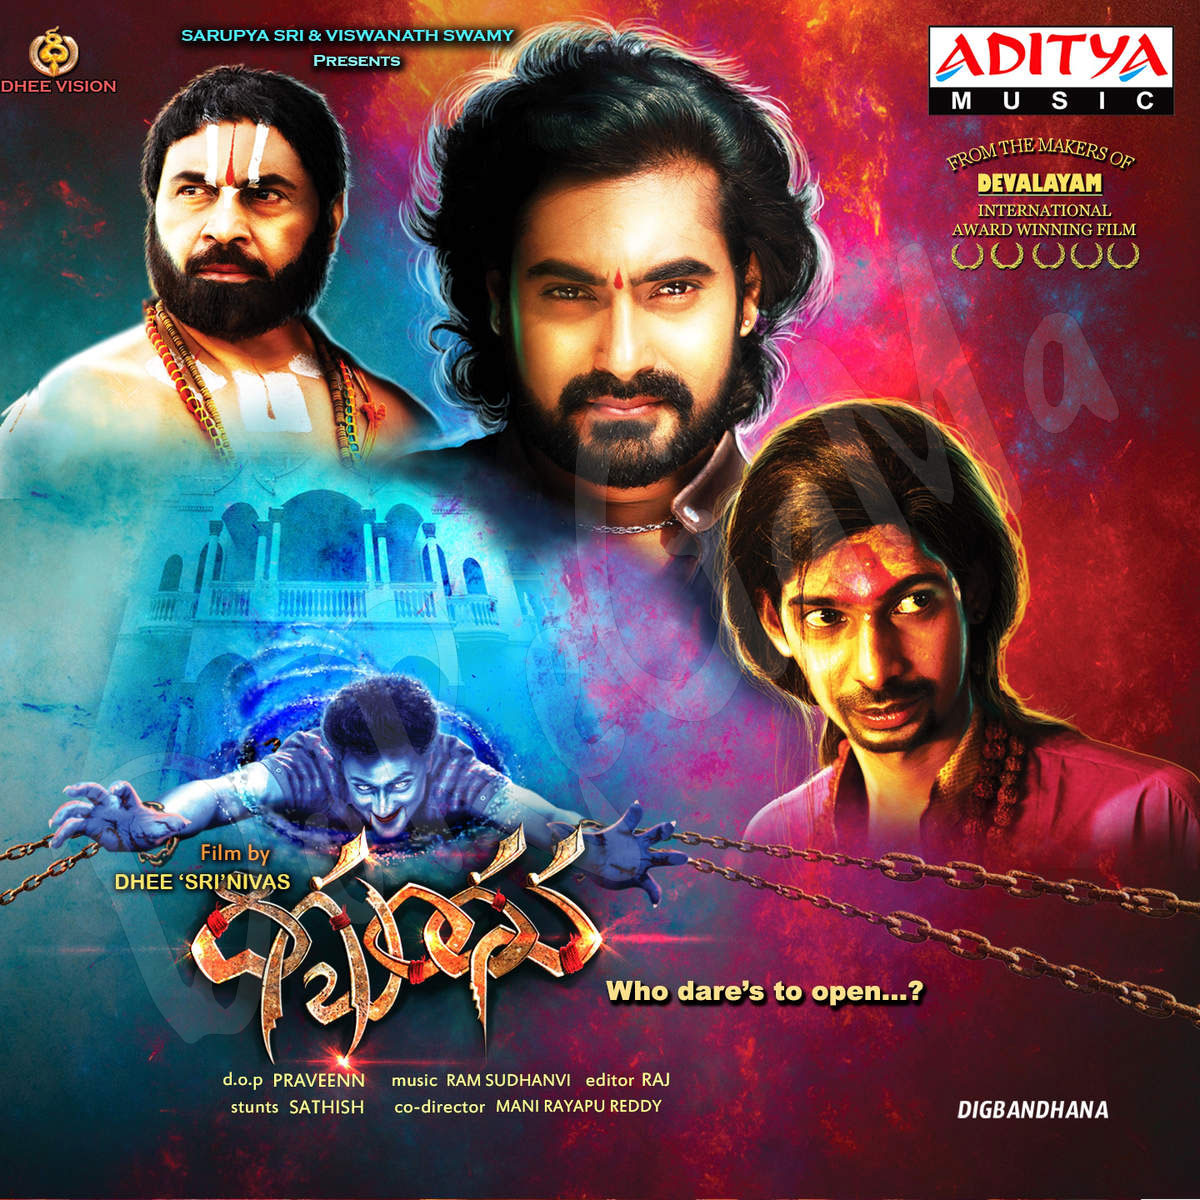 Watch Digbandhana (2016) DVDScr Telugu Full Movie Watch Online Free Download